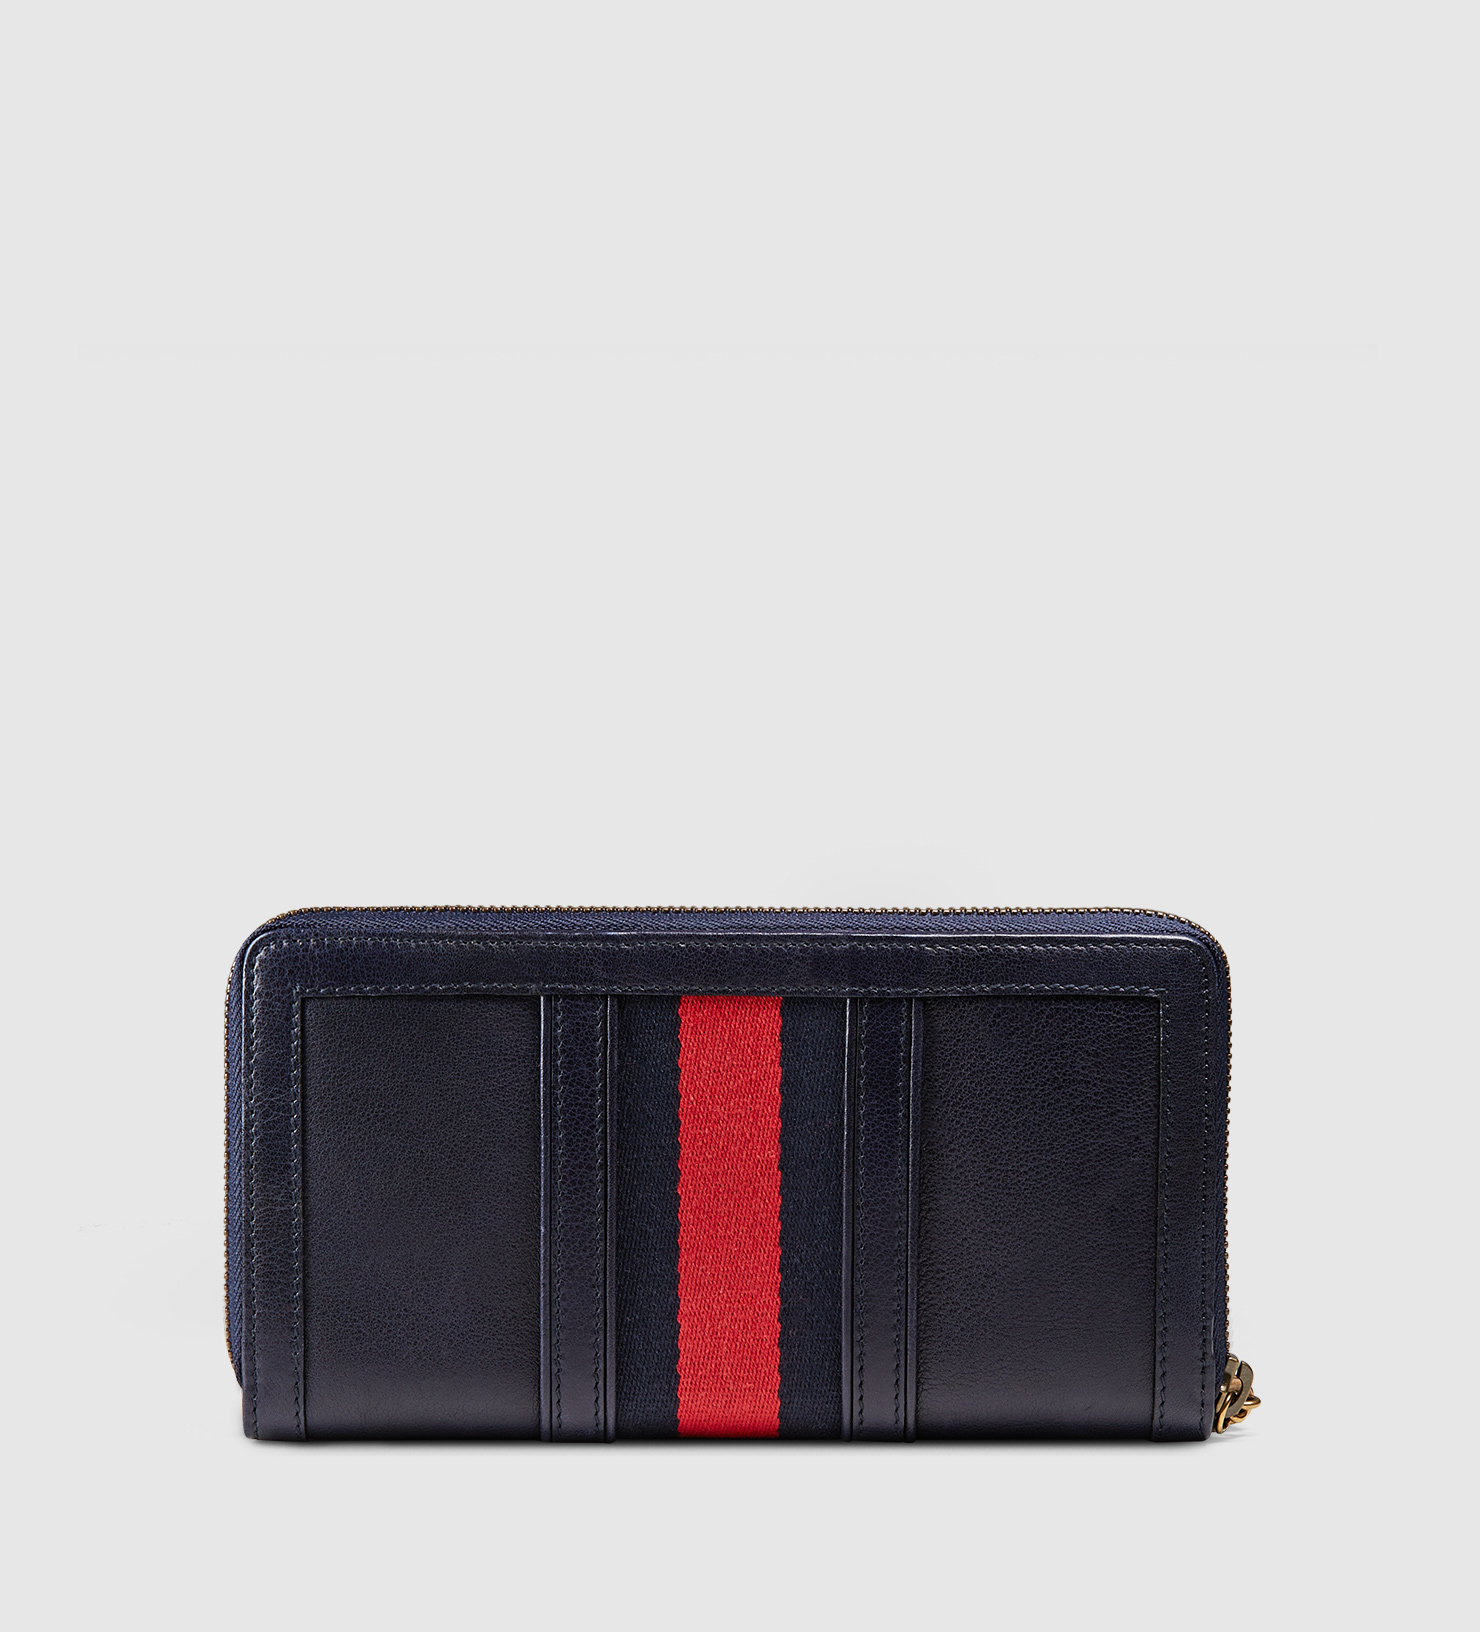 7170fe2798ad Lyst - Gucci Rania Leather Zip Around Wallet in Blue